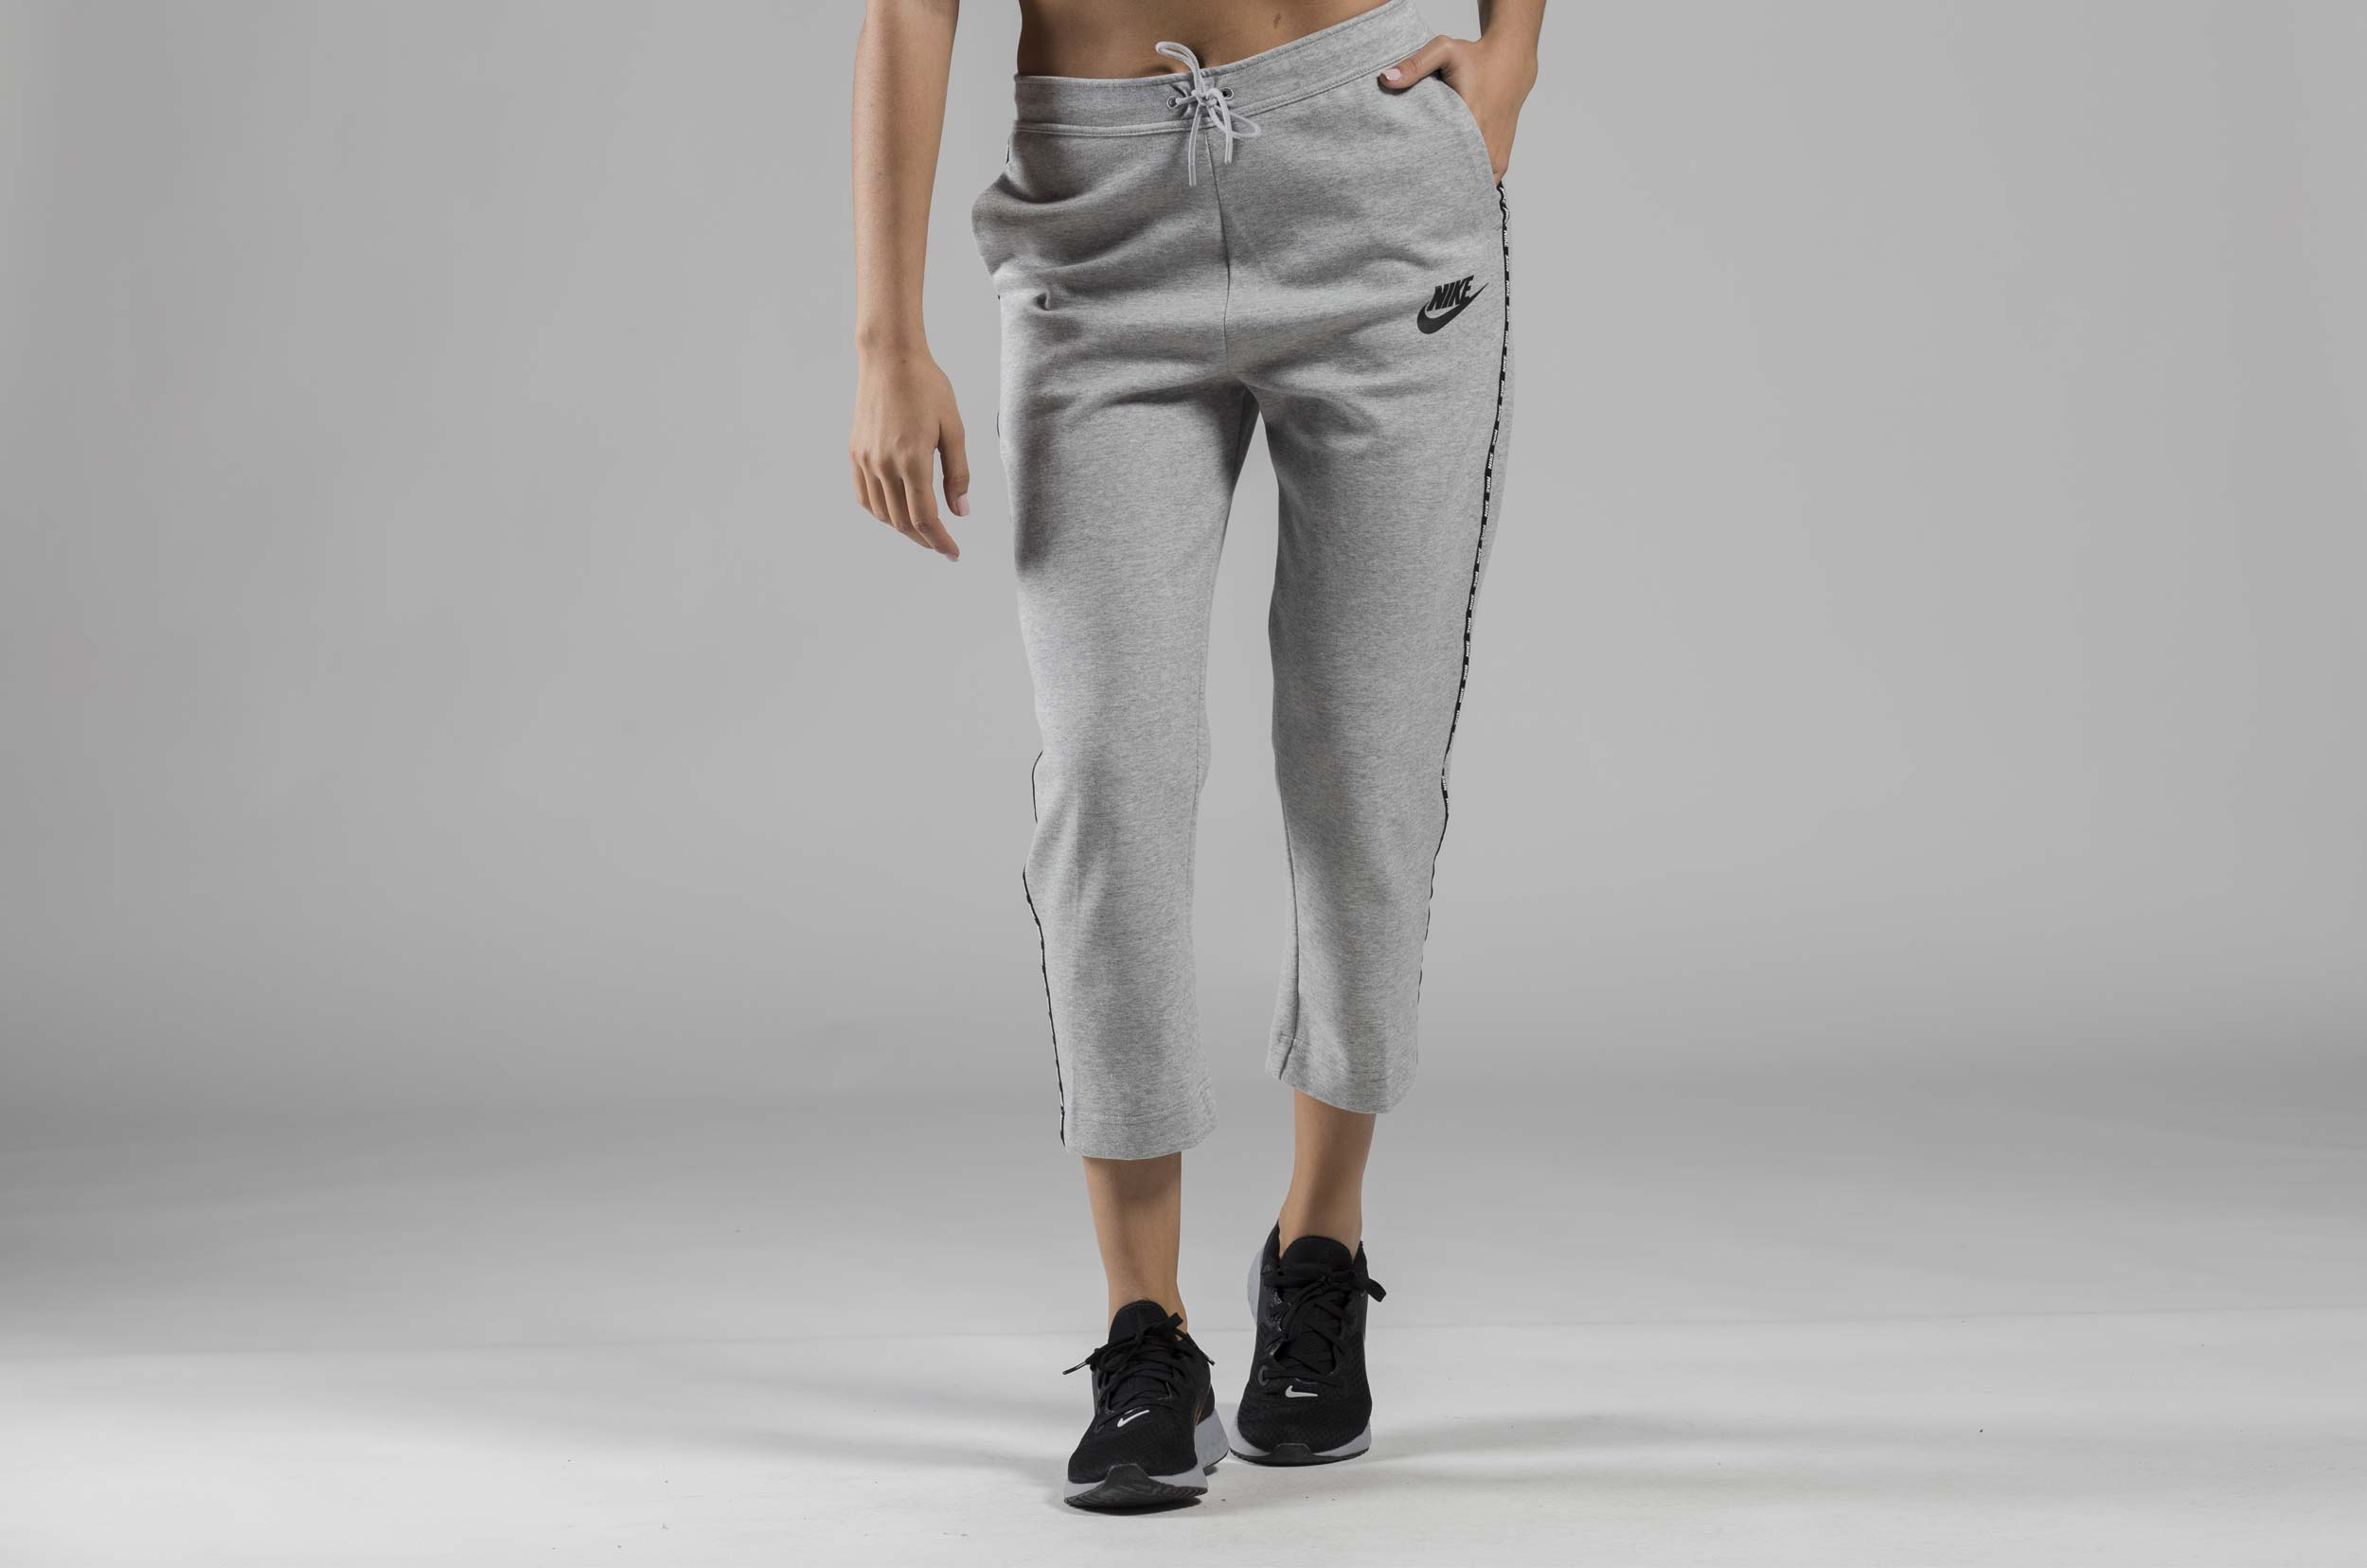 NIKE W NSW OPTC SNKR PANT 931864-021 Ανθρακί